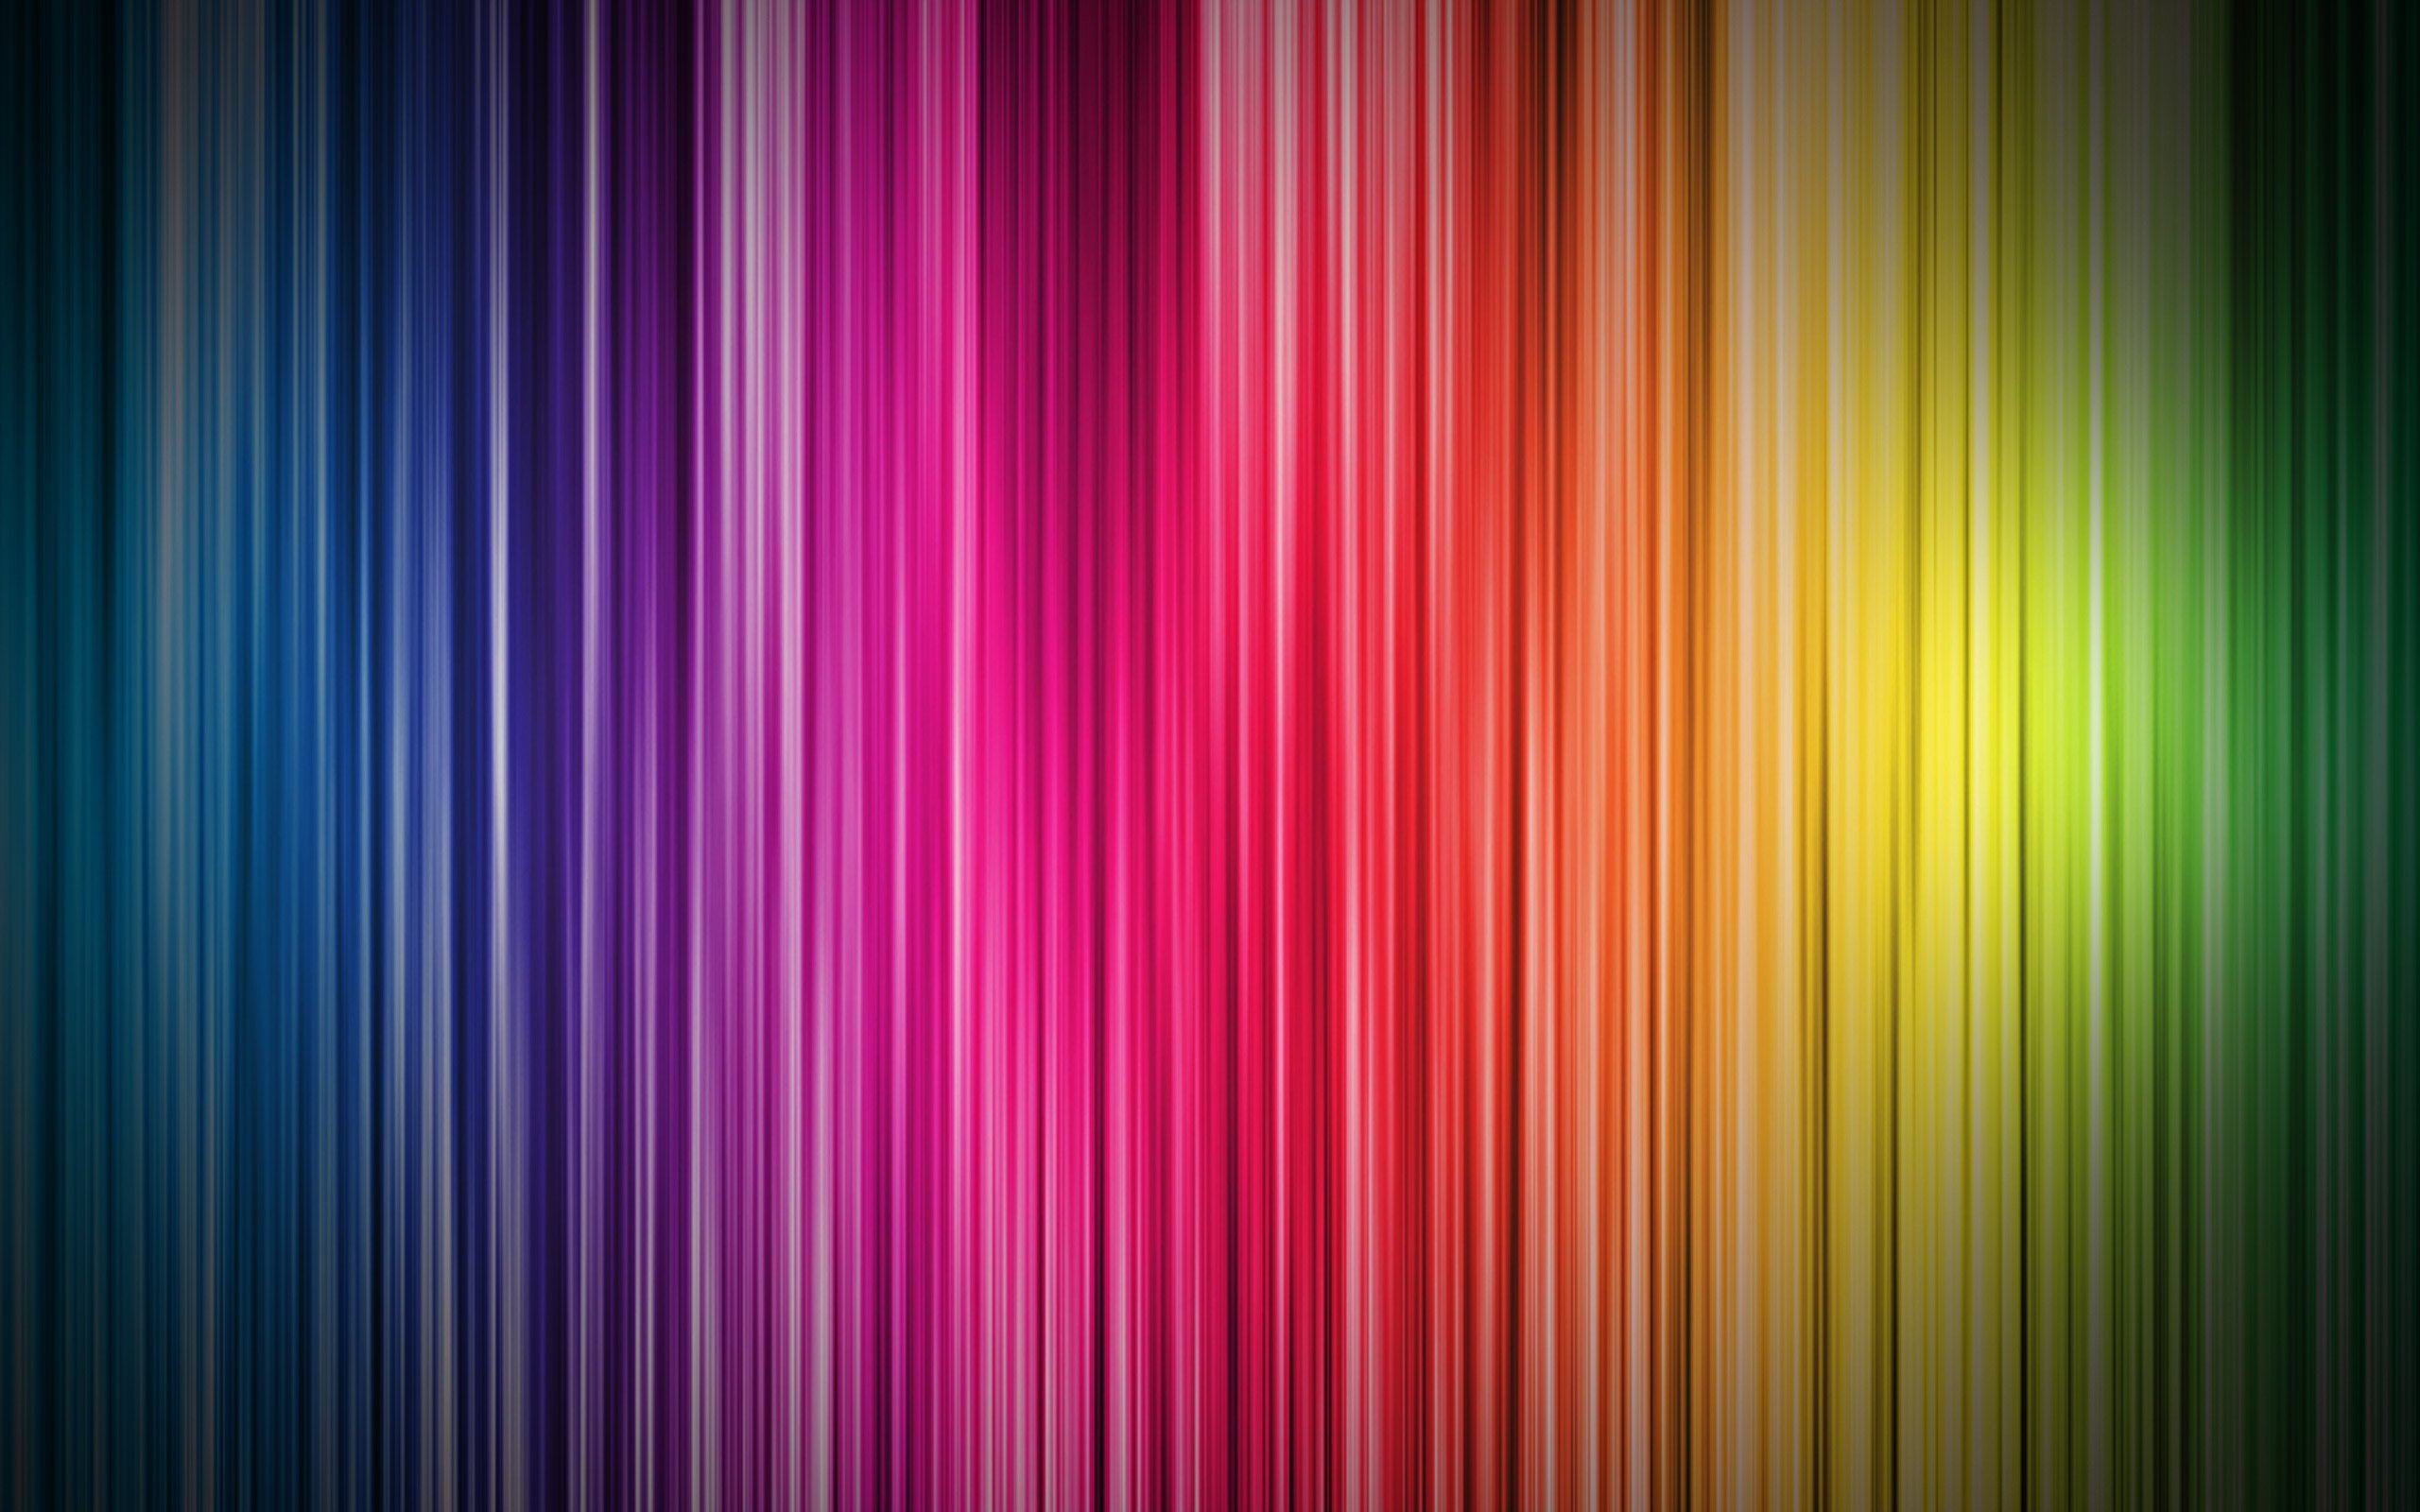 Stripes Wallpapers Desktop Wallpapers 2560x1600